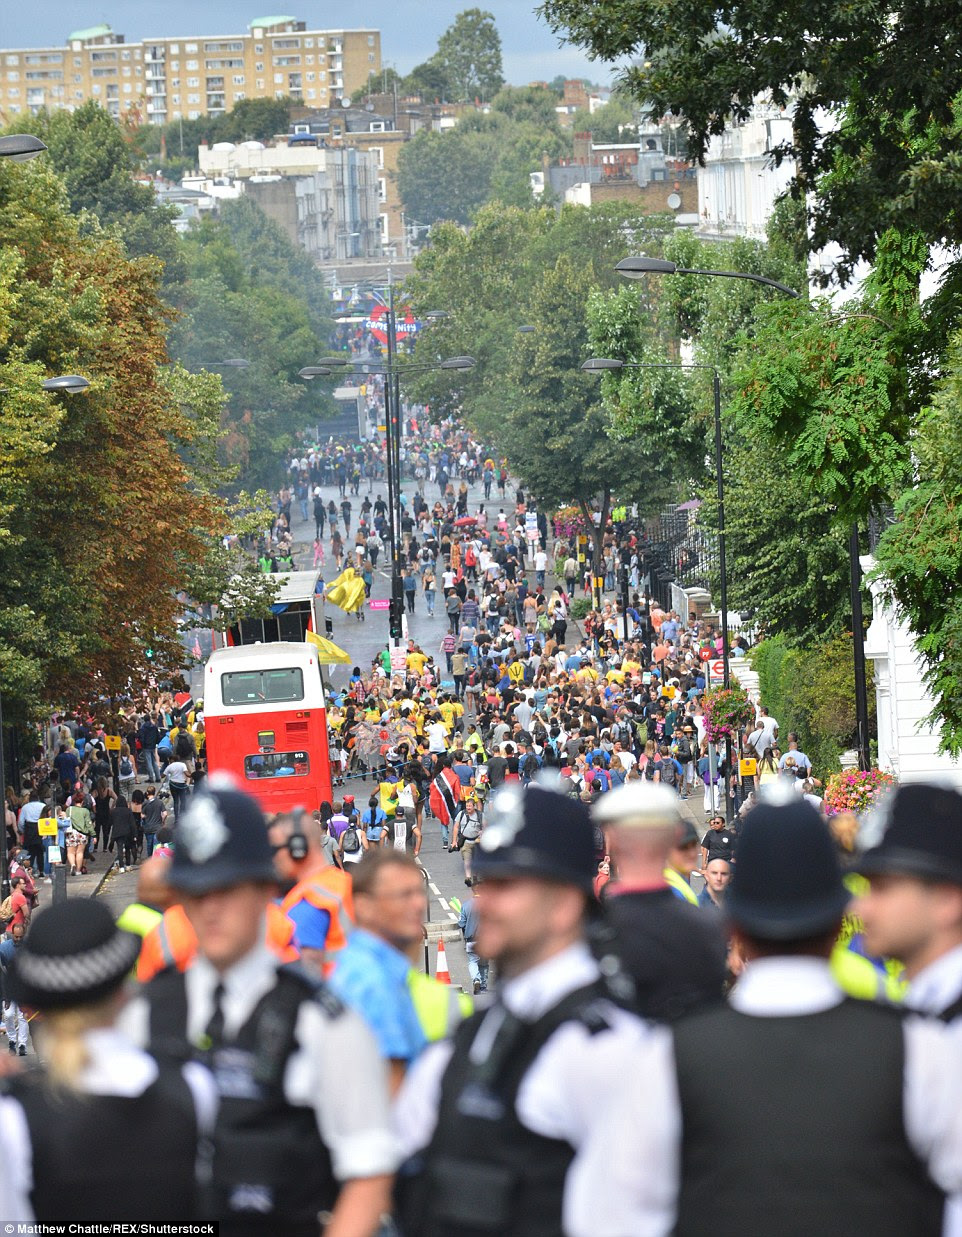 Police have been very visible on the opening day of the Notting Hill Carnival following terror attacks in other parts of Europe